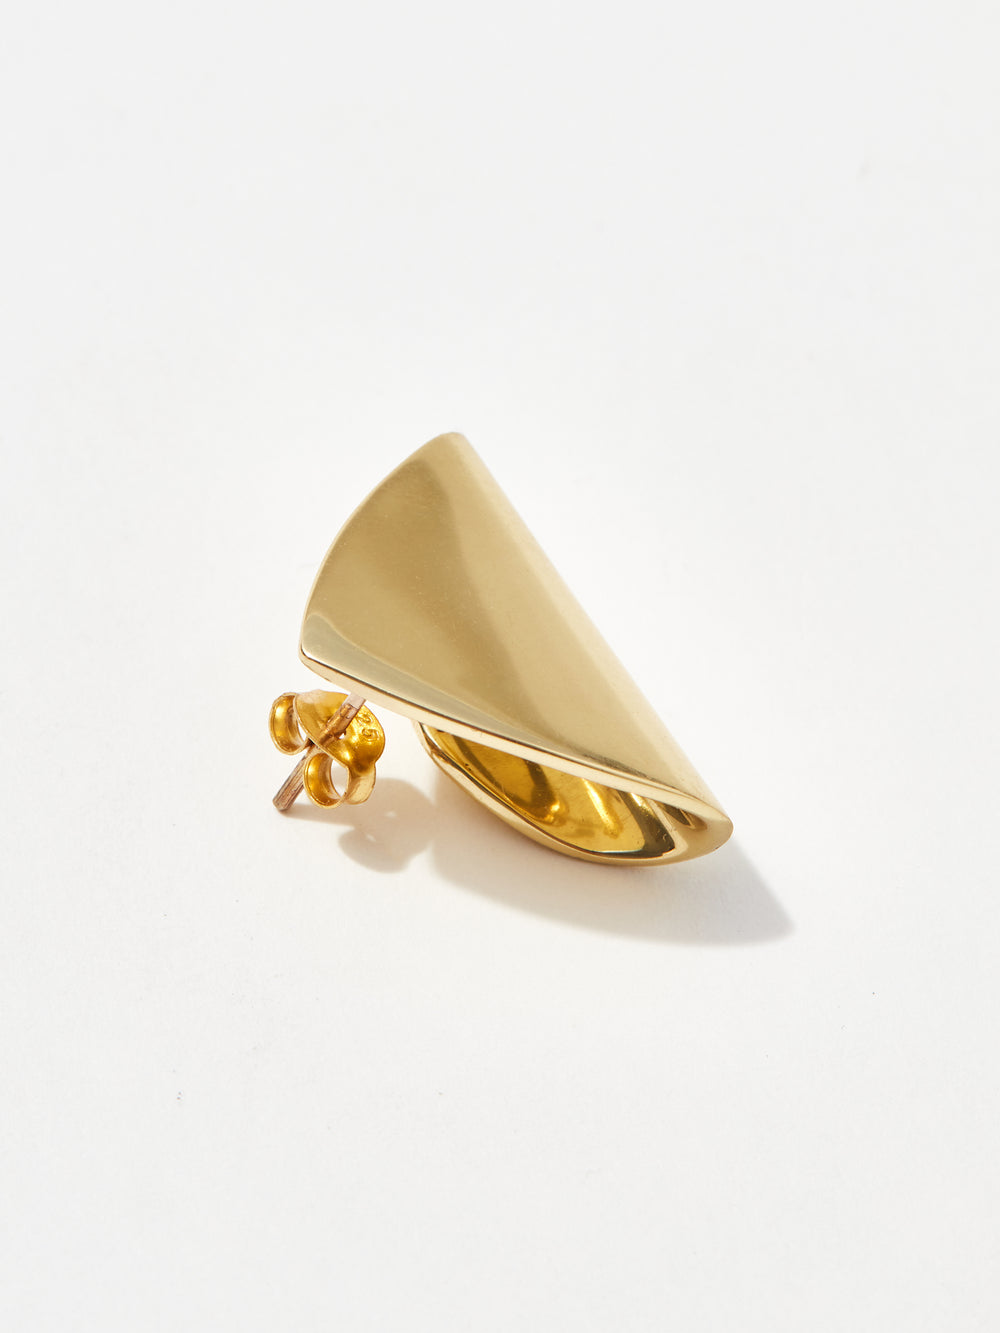 louise olsen large shield stud